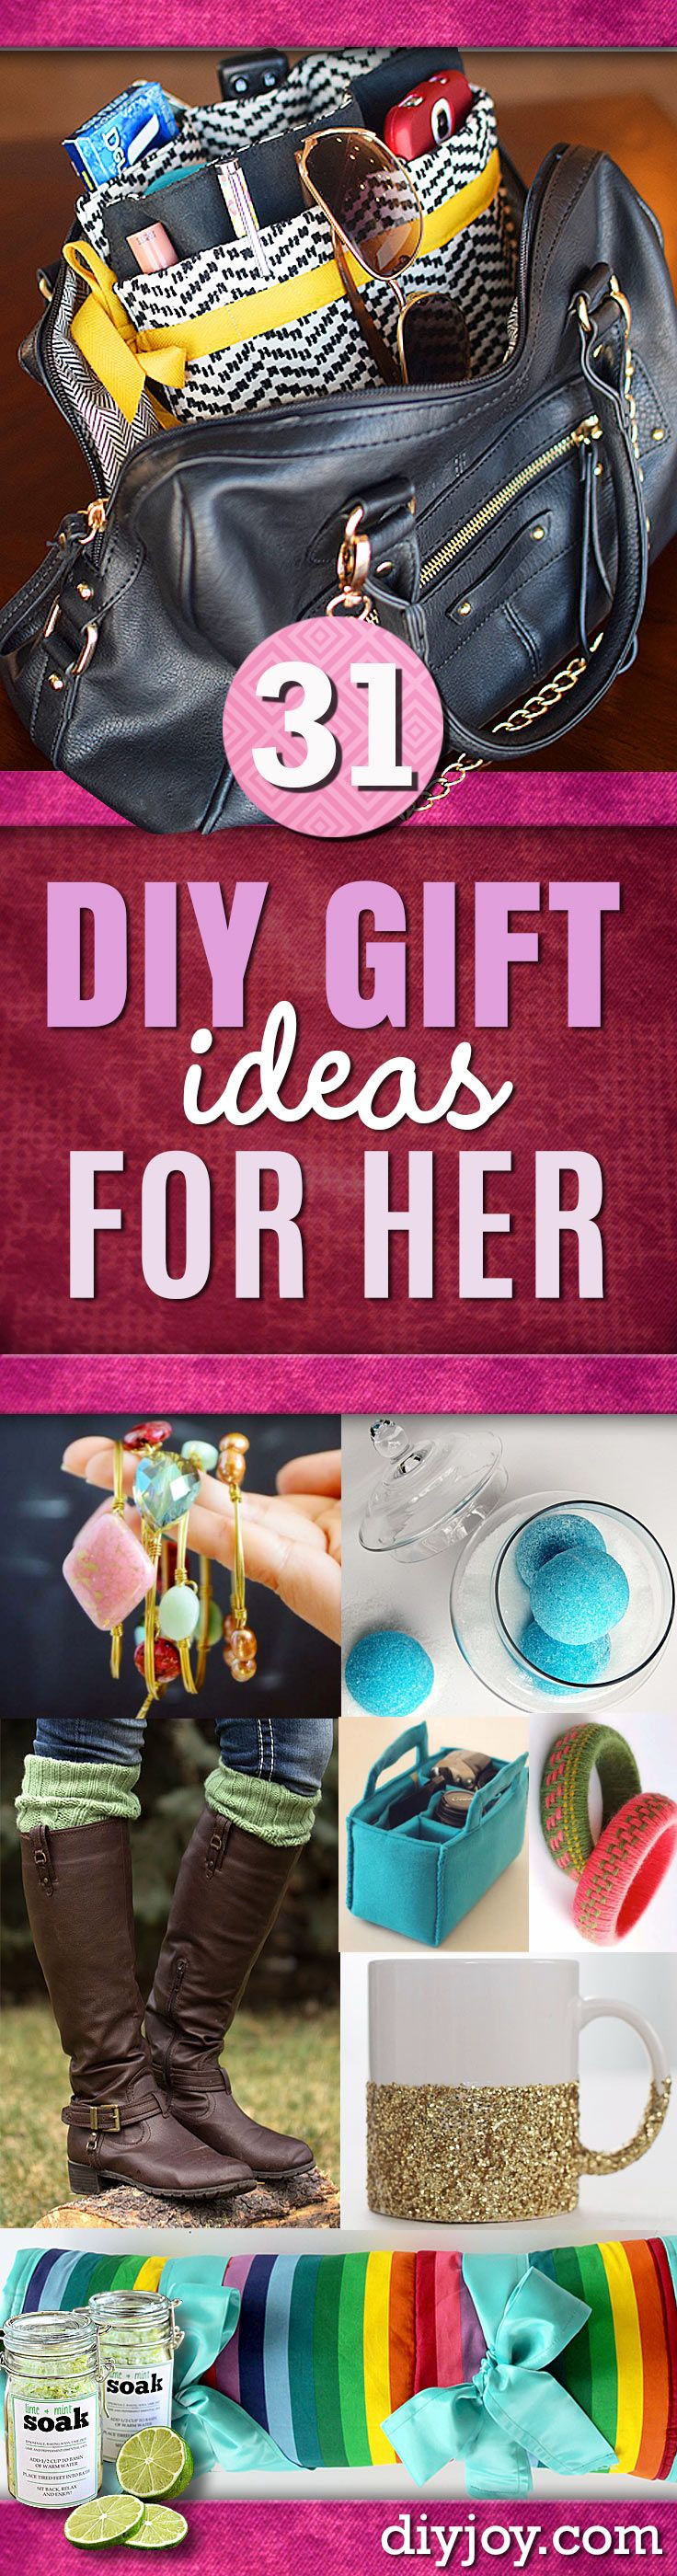 Best ideas about DIY Christmas Gift For Girlfriend . Save or Pin 17 Best ideas about Homemade Gifts For Girlfriend on Now.